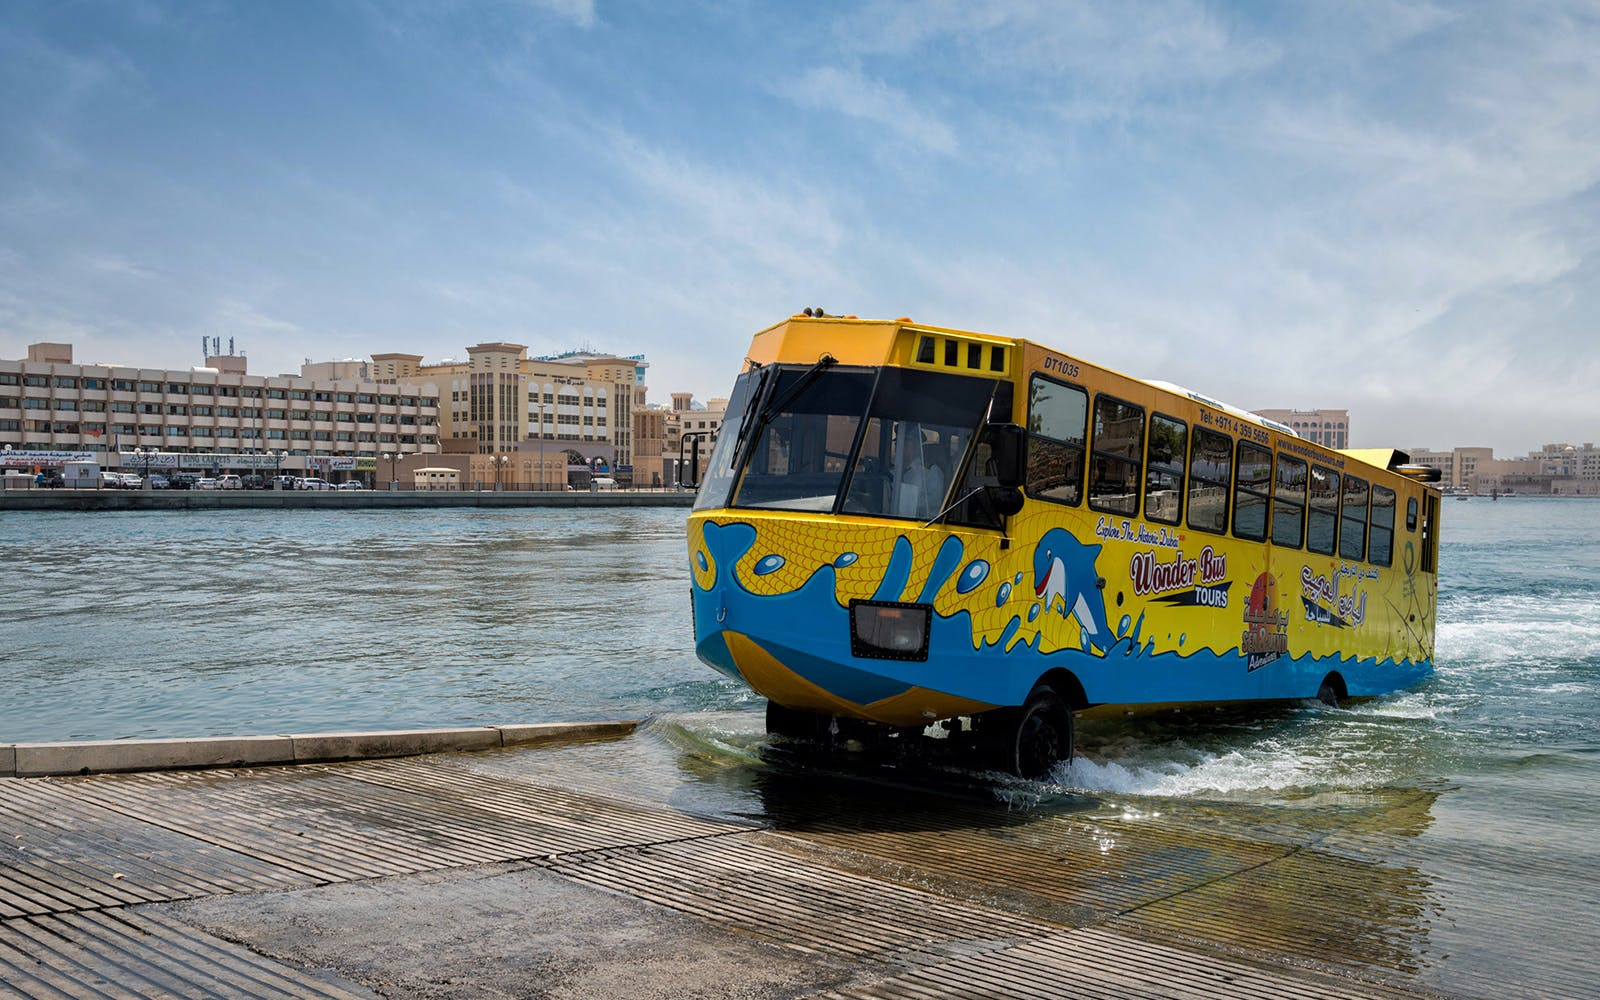 dubai wonderbus tour - sea & land adventure-1